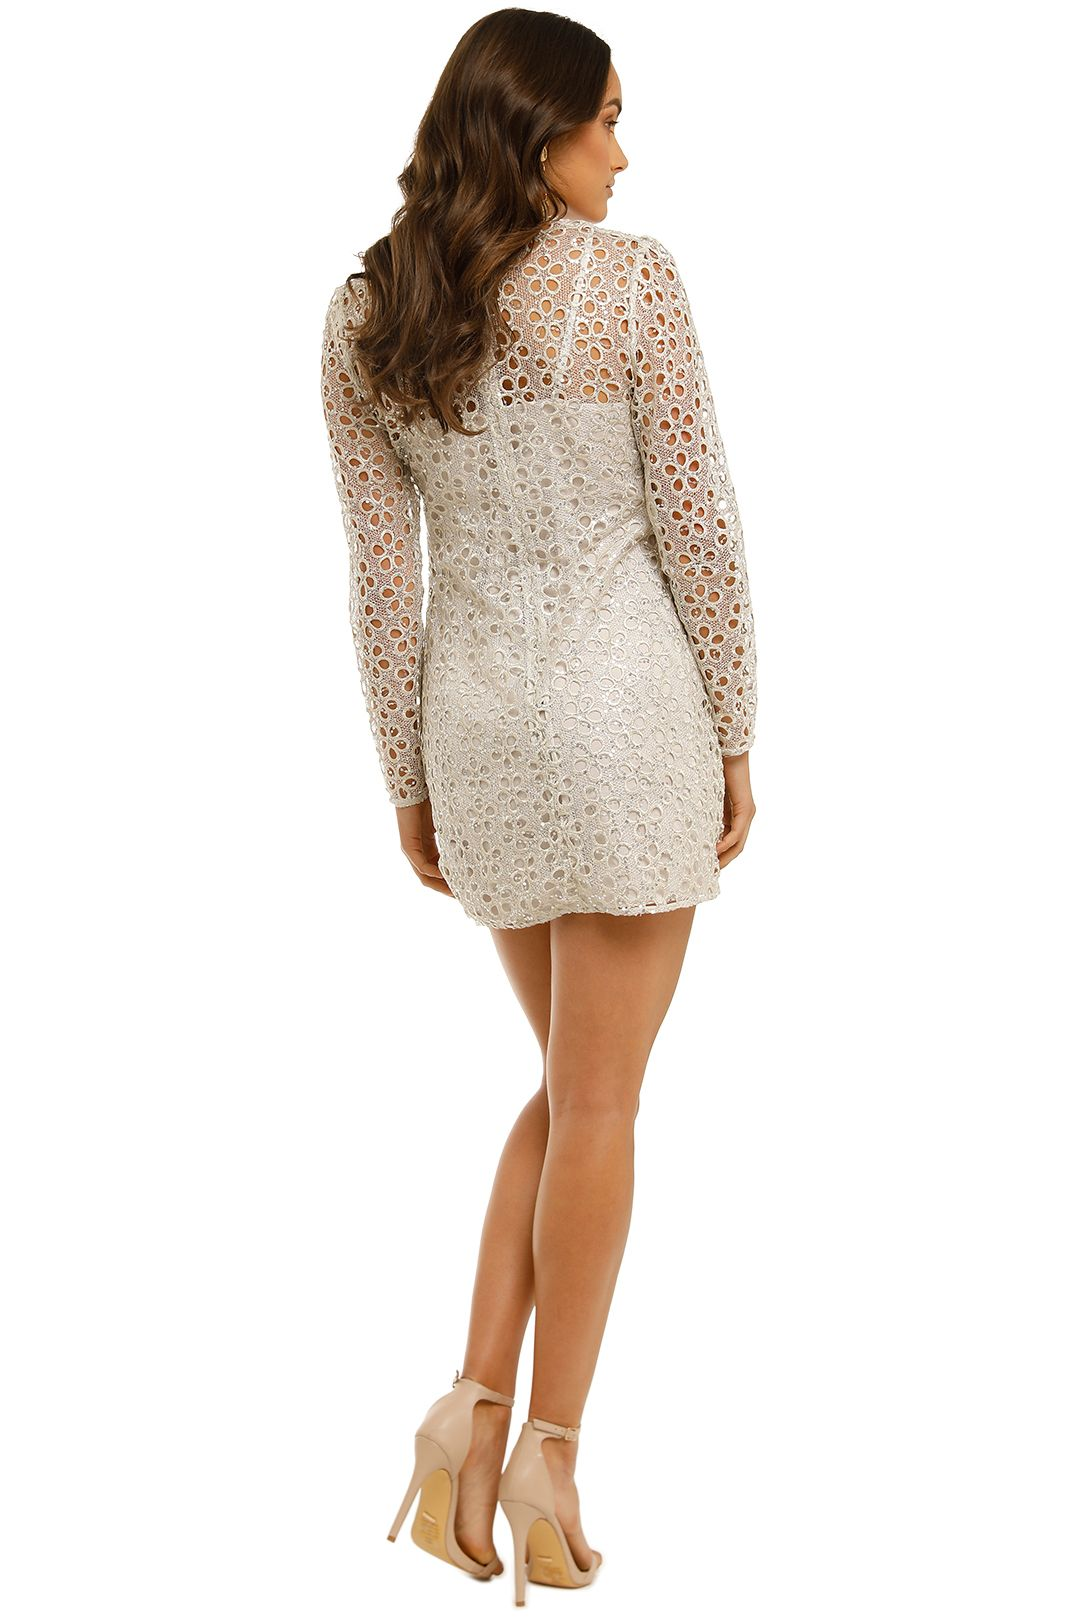 Stevie May-Concord-LS Mini-Dress-Silver-Back